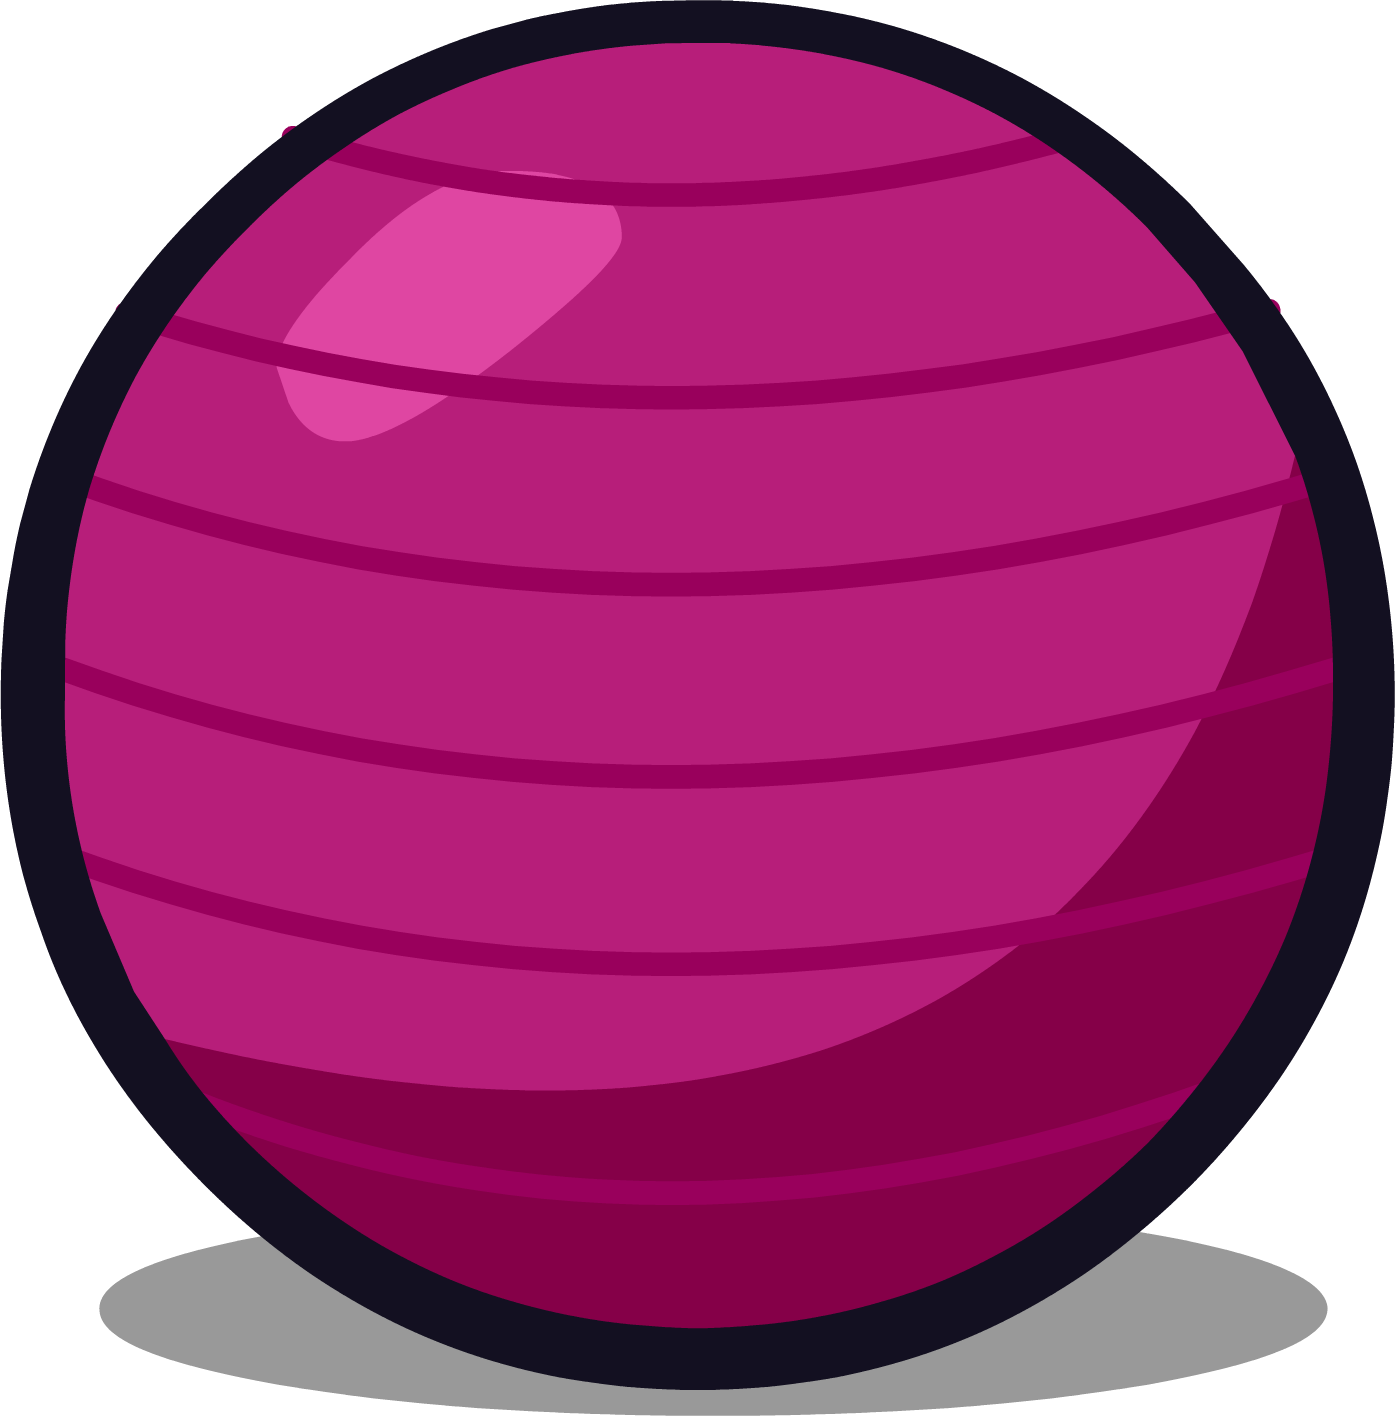 gym clipartlook exercise. Marbles clipart 9 ball